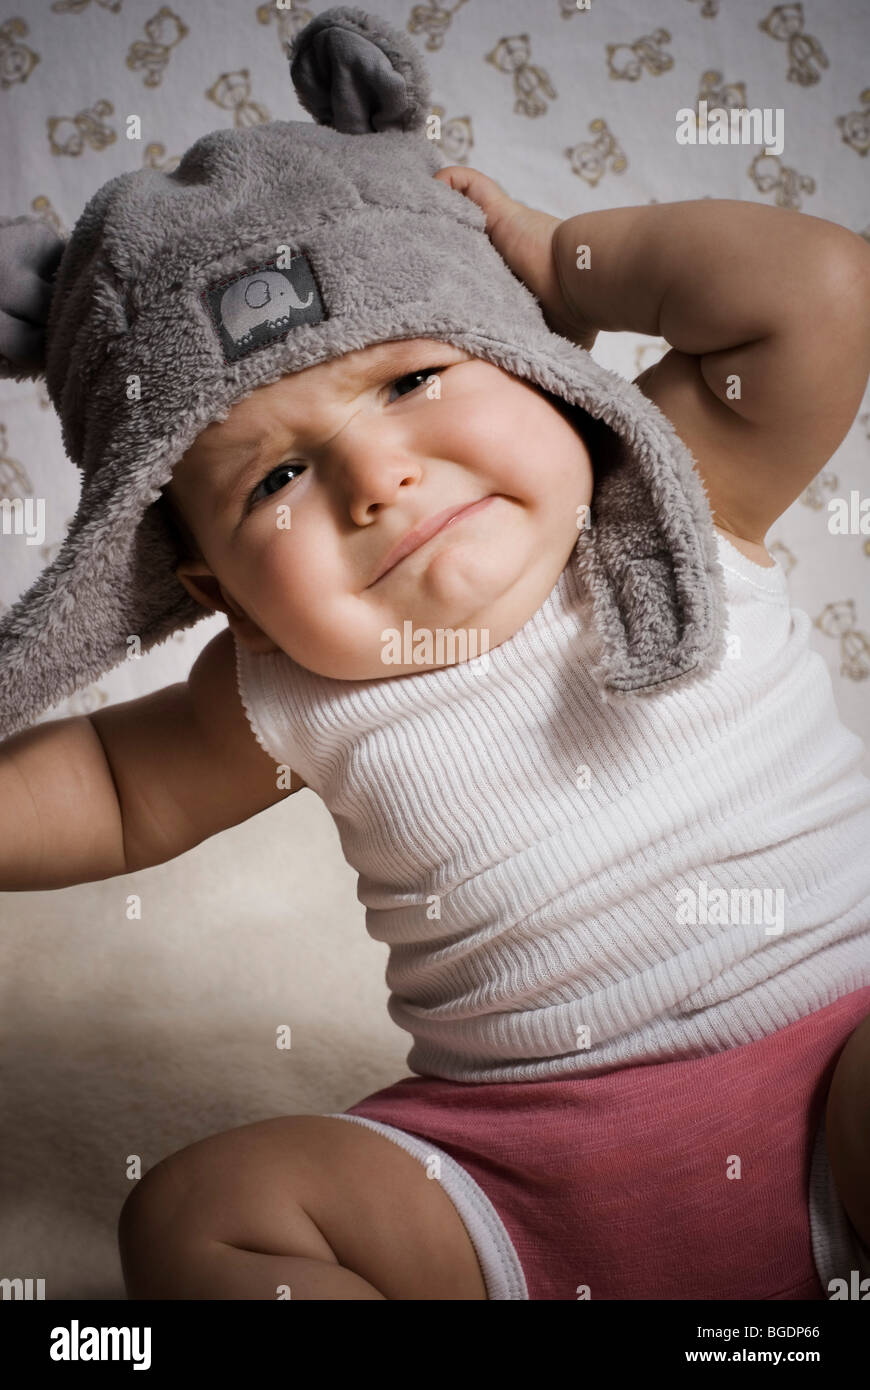 Upset baby - Stock Image